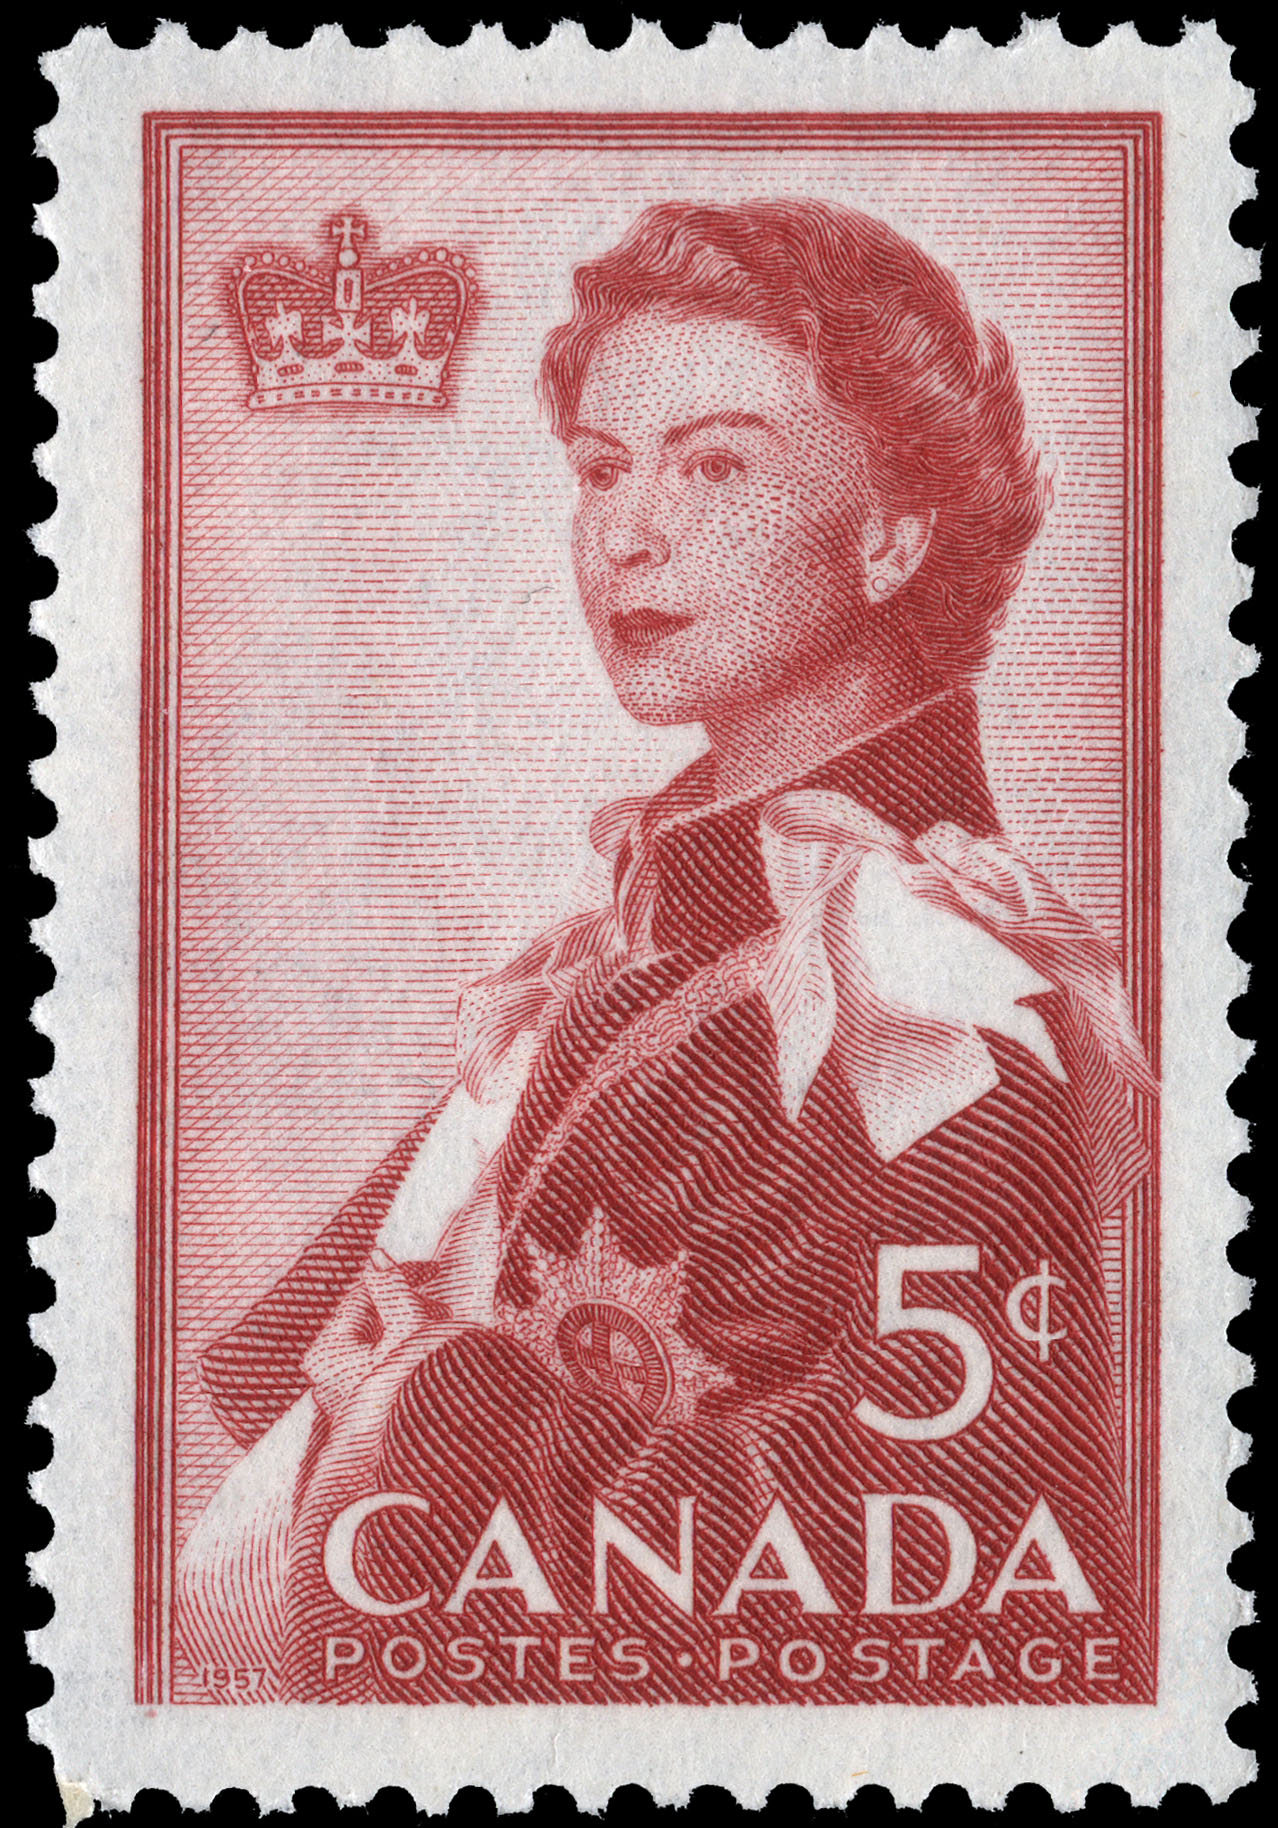 Royal Visit, 1959 Canada Postage Stamp